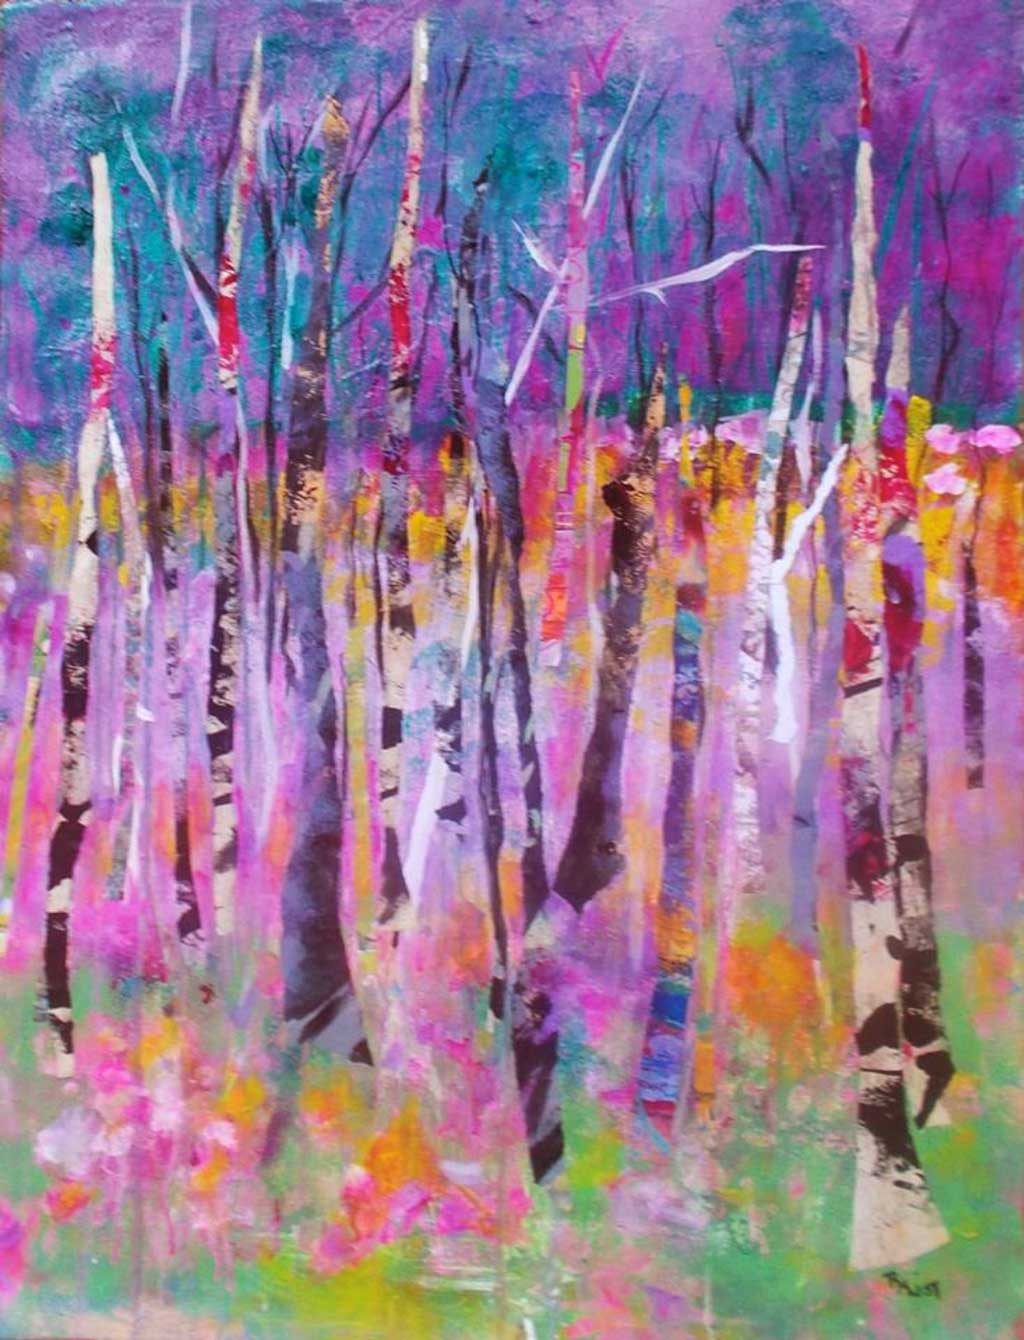 Mixed media painting of colorful tree trunks